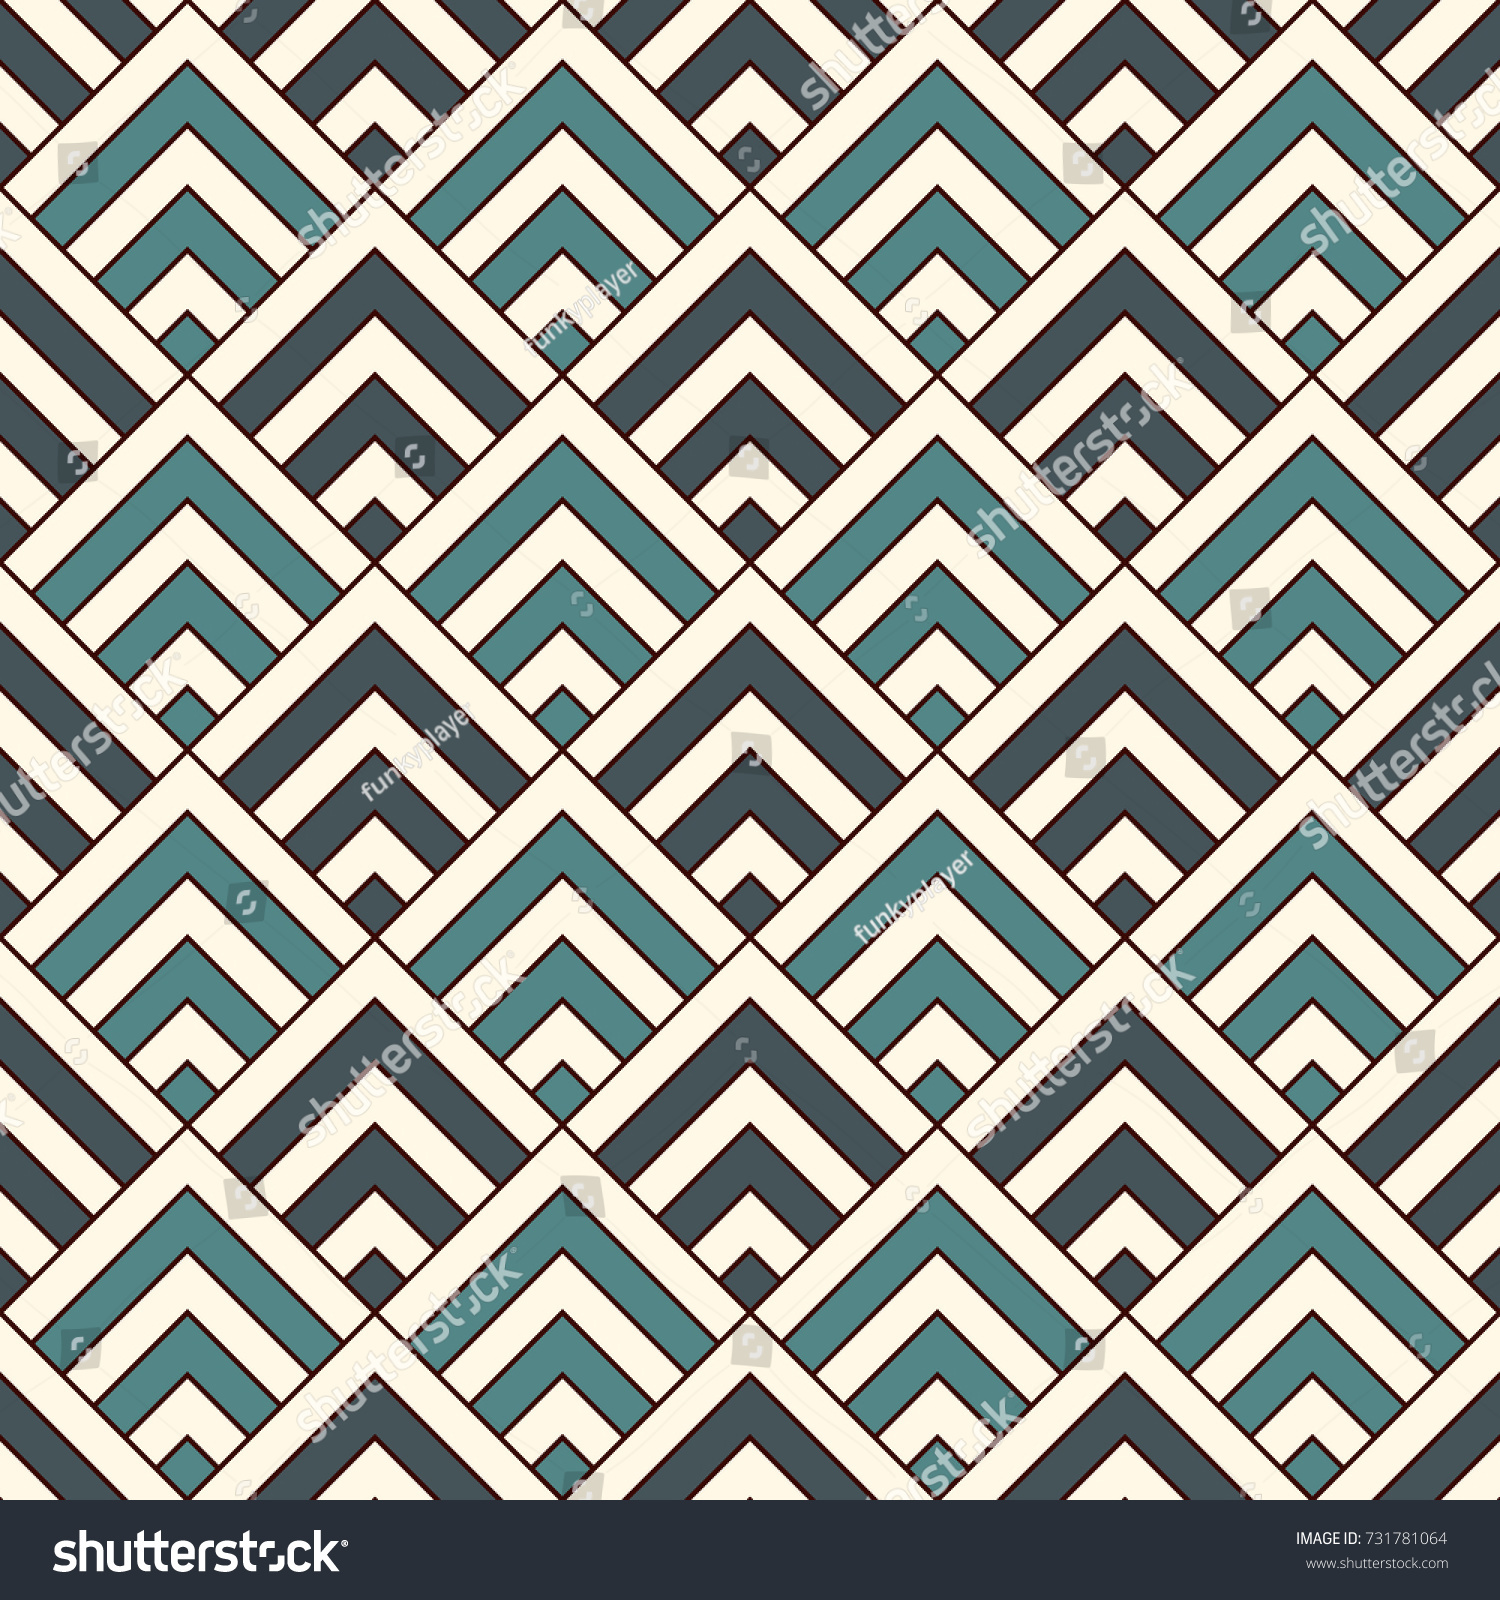 Repeated Chevrons Abstract Wallpaper Asian Traditional 731781064